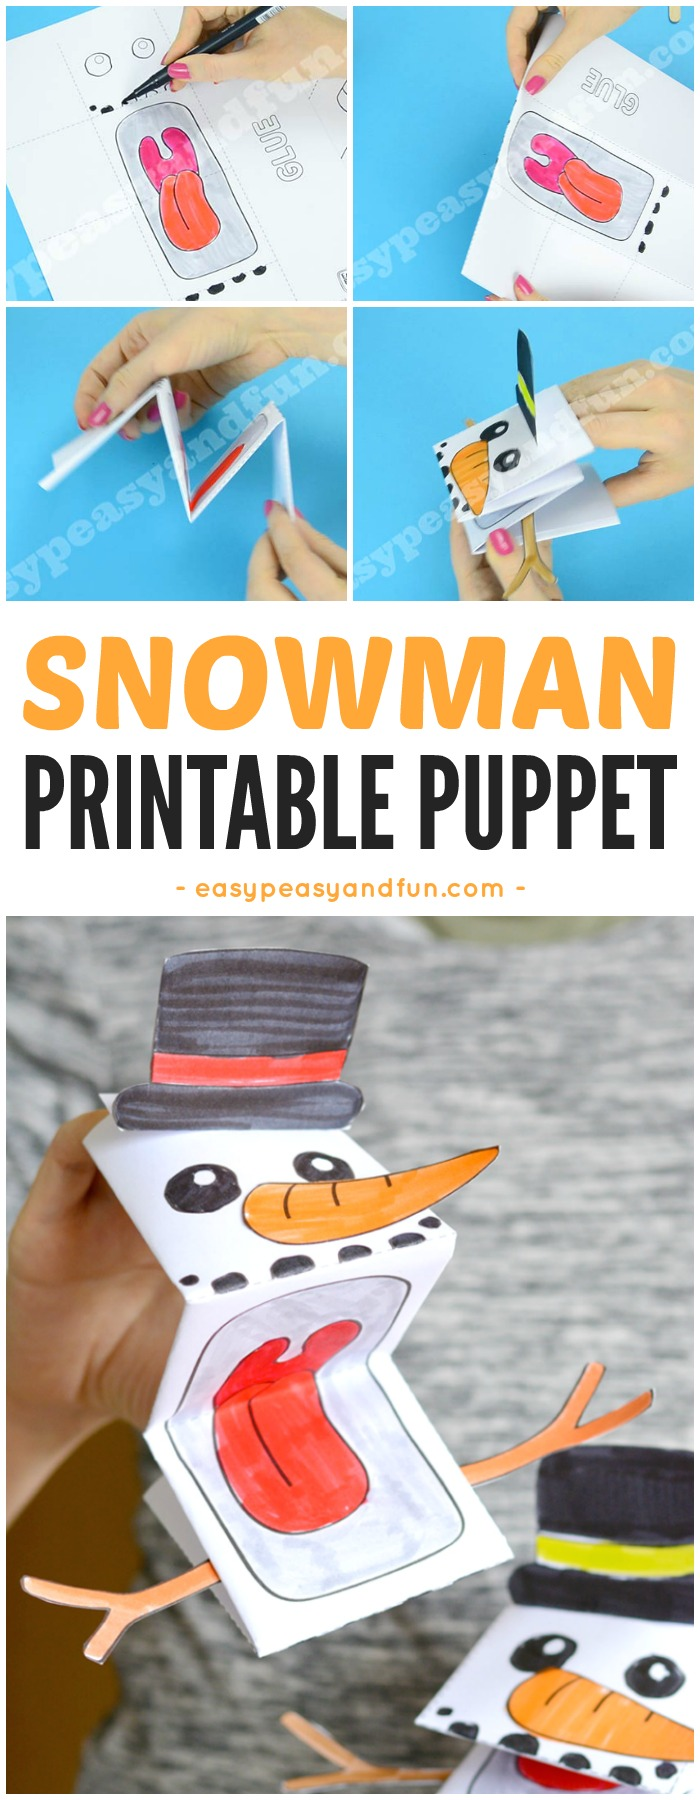 Printable Snowman Puppet Craft for Kids. Fun Winter craft idea for kids to make. #Wintercrafts #snowmancrafts #printablepuppet